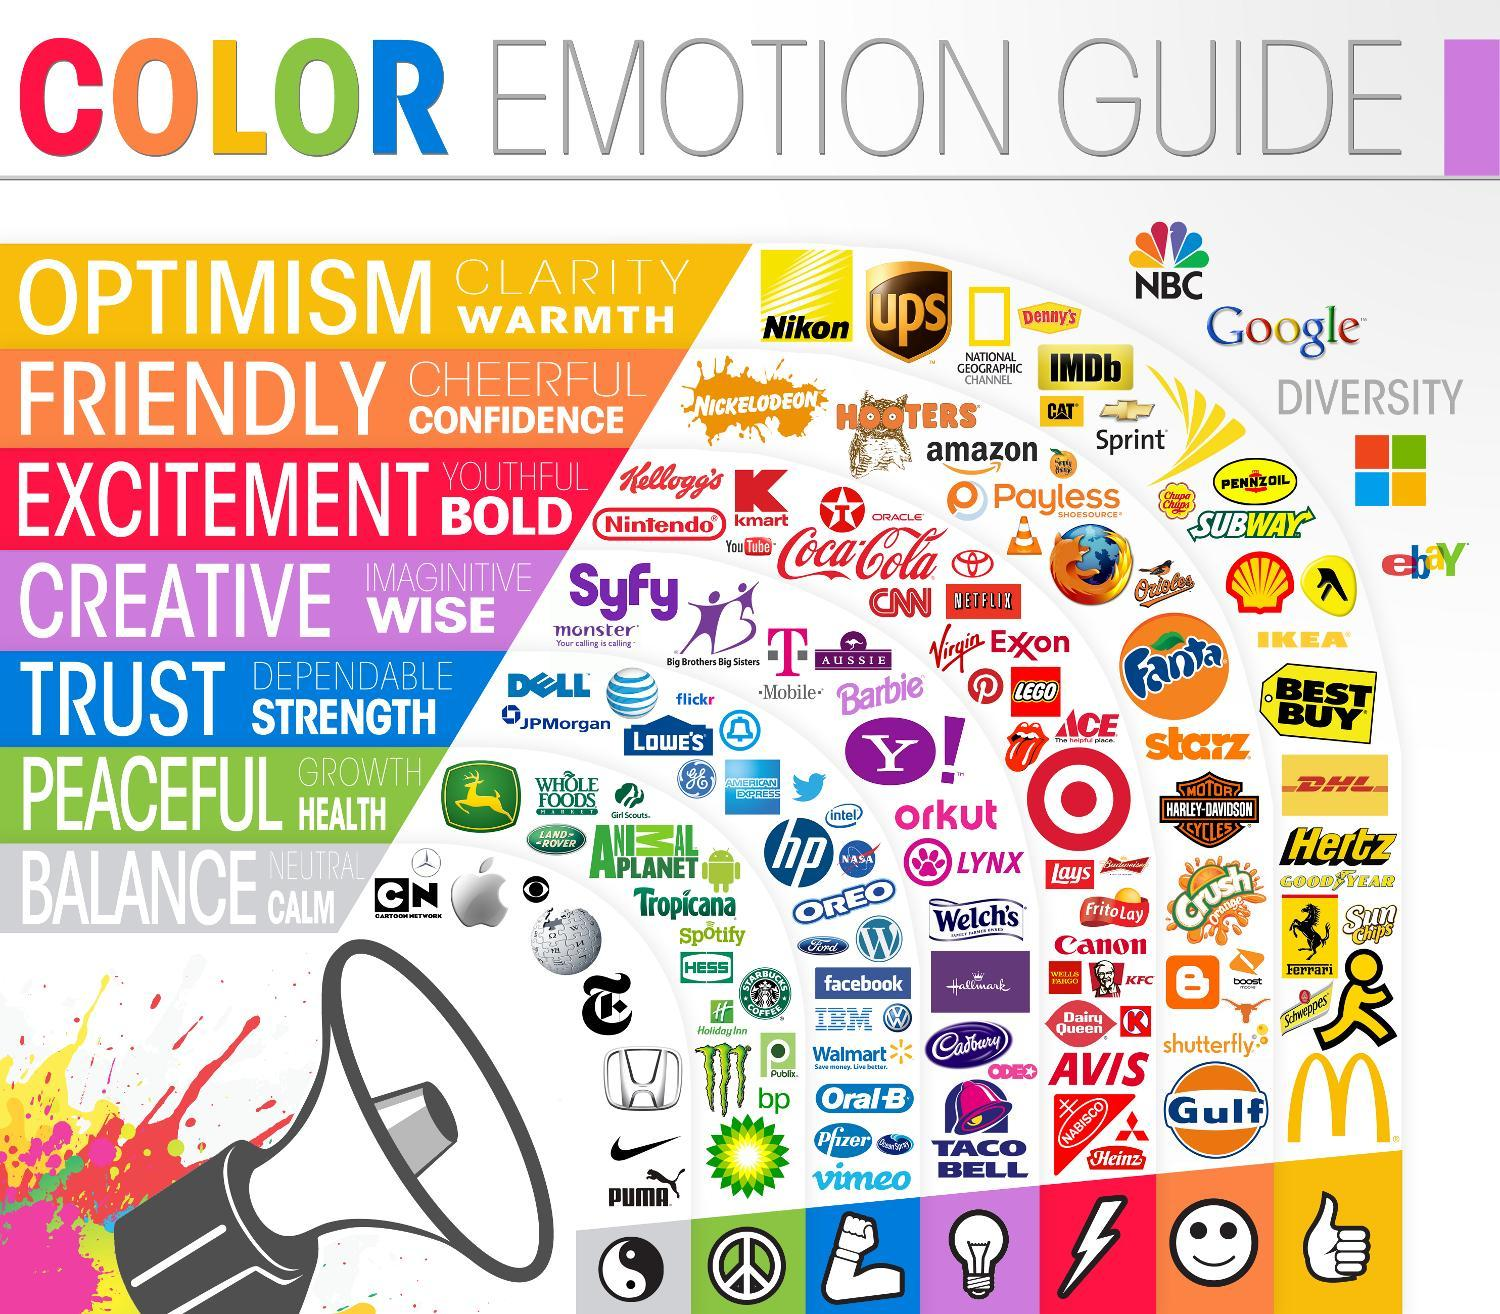 2. Color Can Influence Shoppers